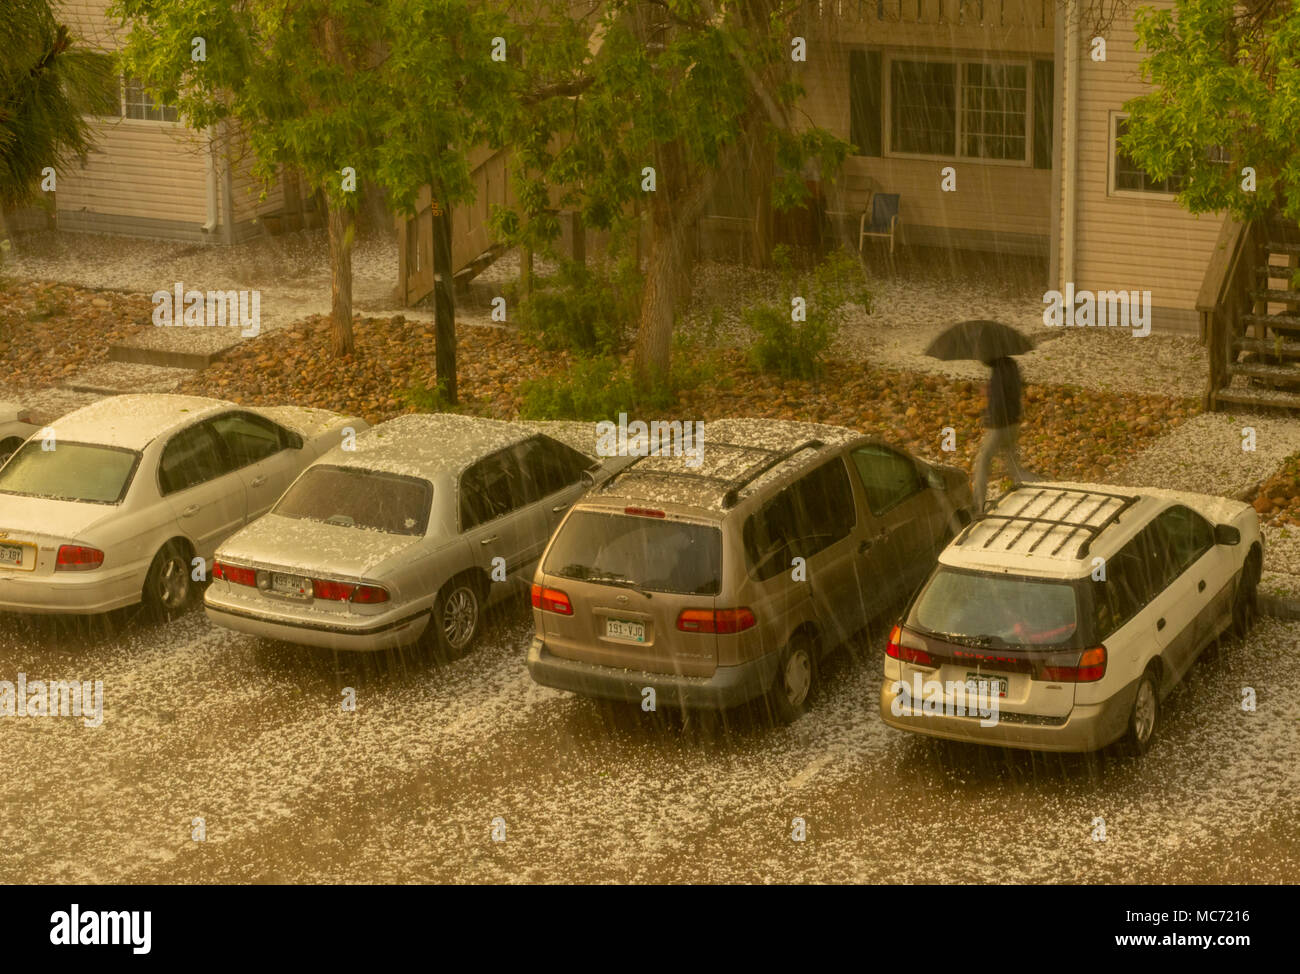 Hailstorm on parked cars in lot of suburban apartment building, Aurora Colorado US. See vertical streaks-(hail falling), white hailstones on ground. - Stock Image